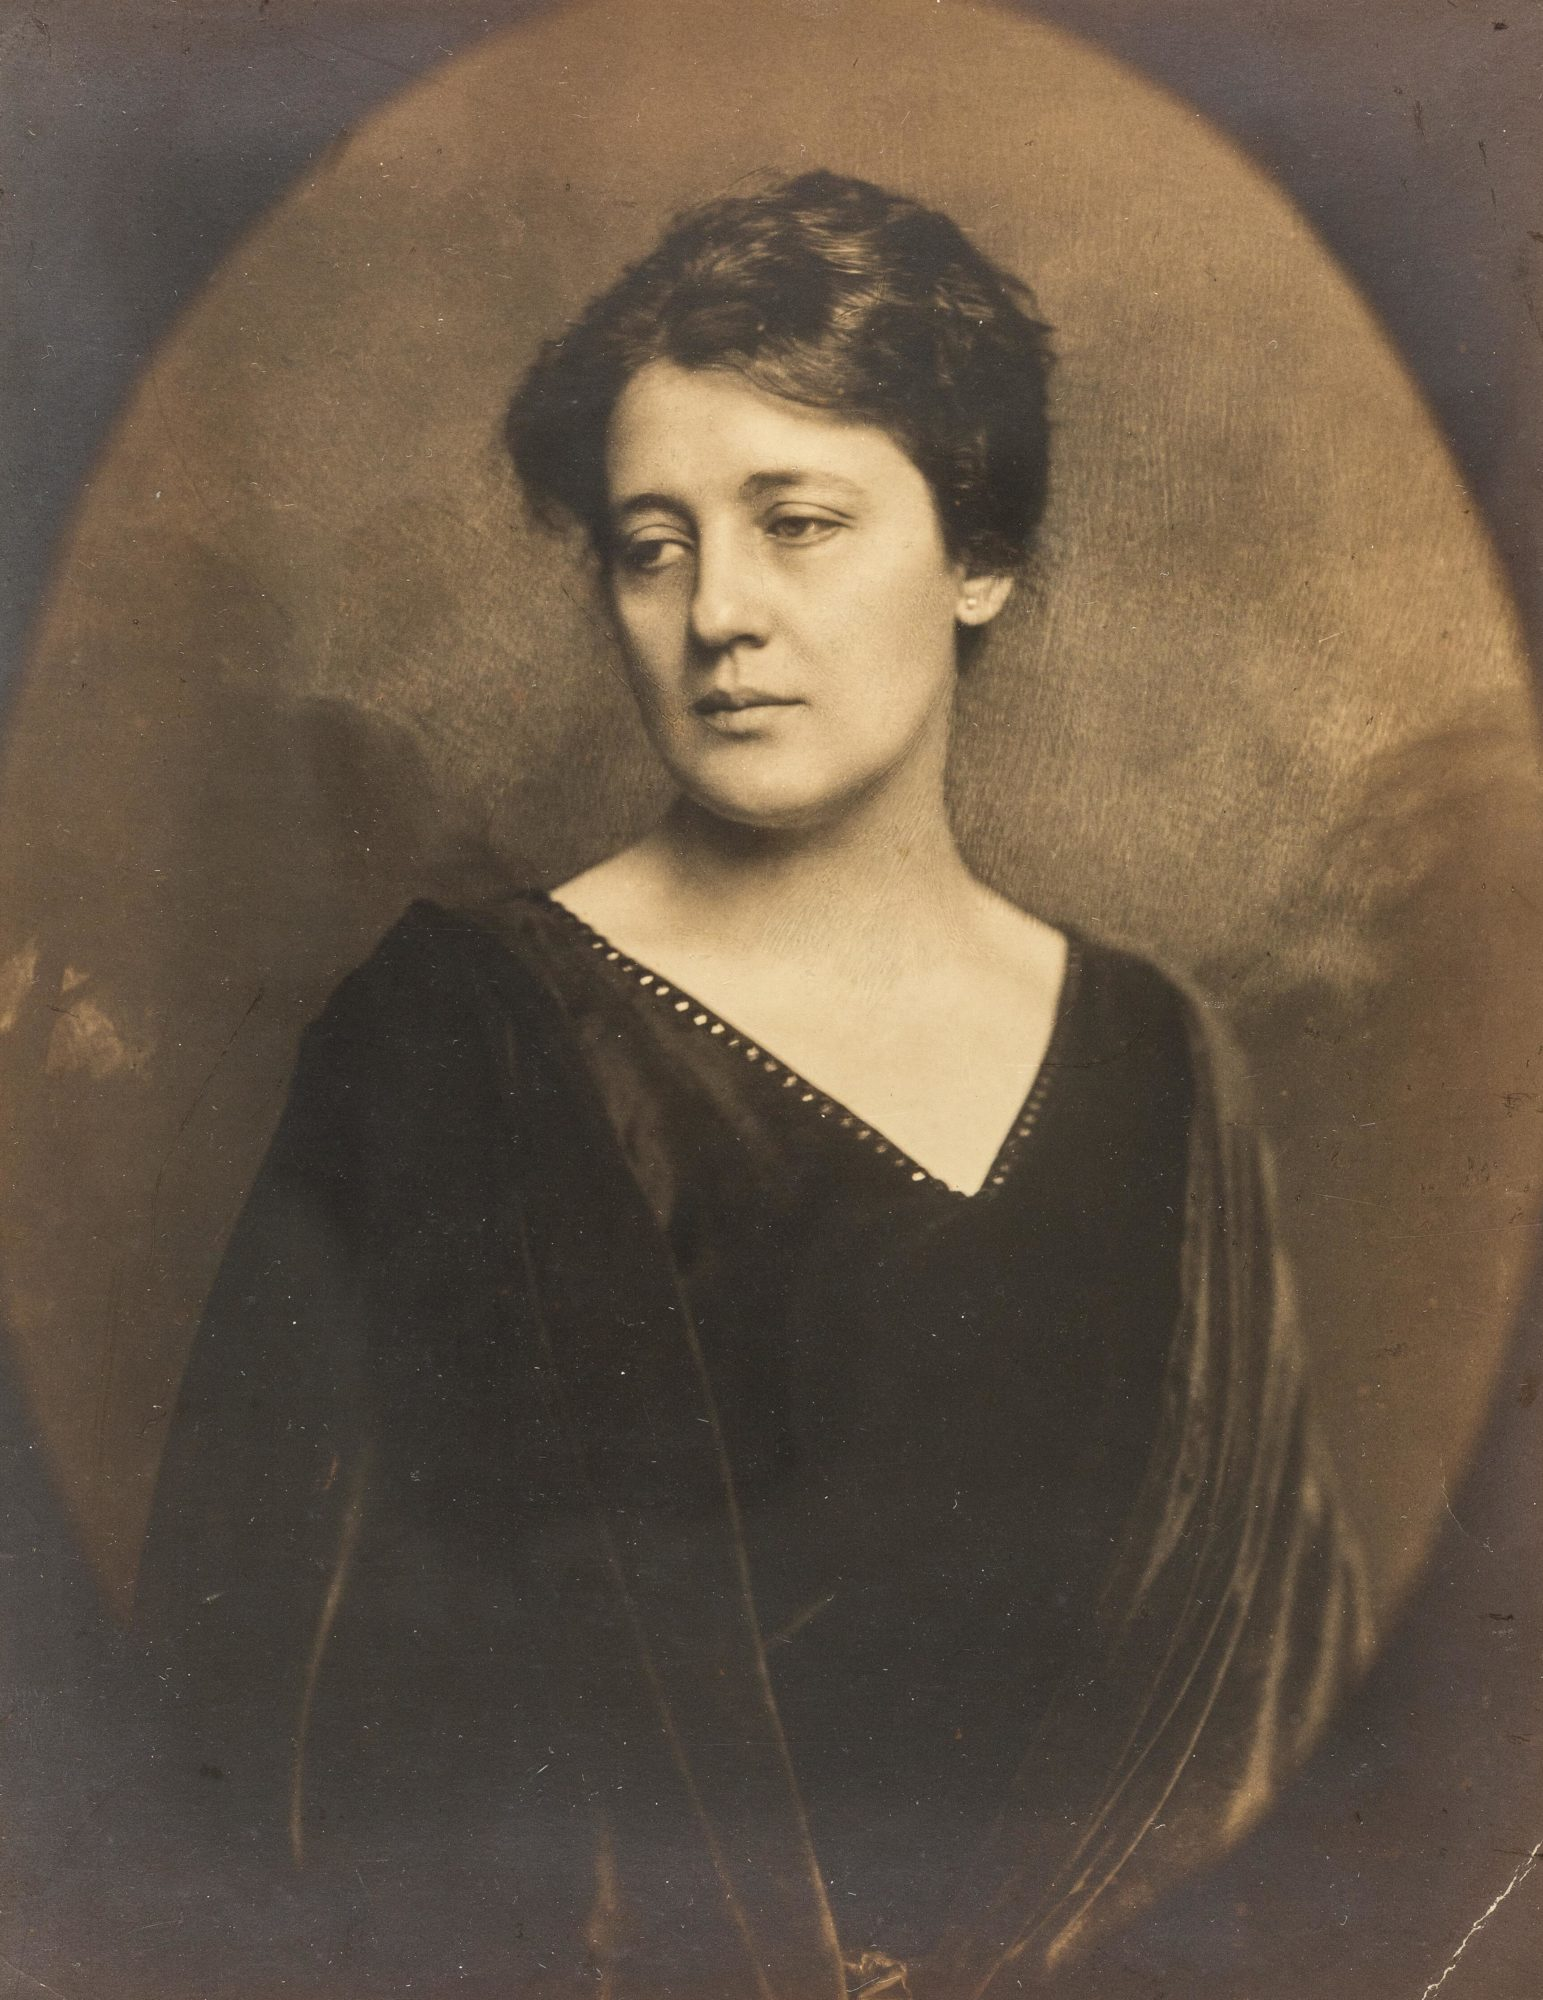 Photograph of Melanie Klein around 1912